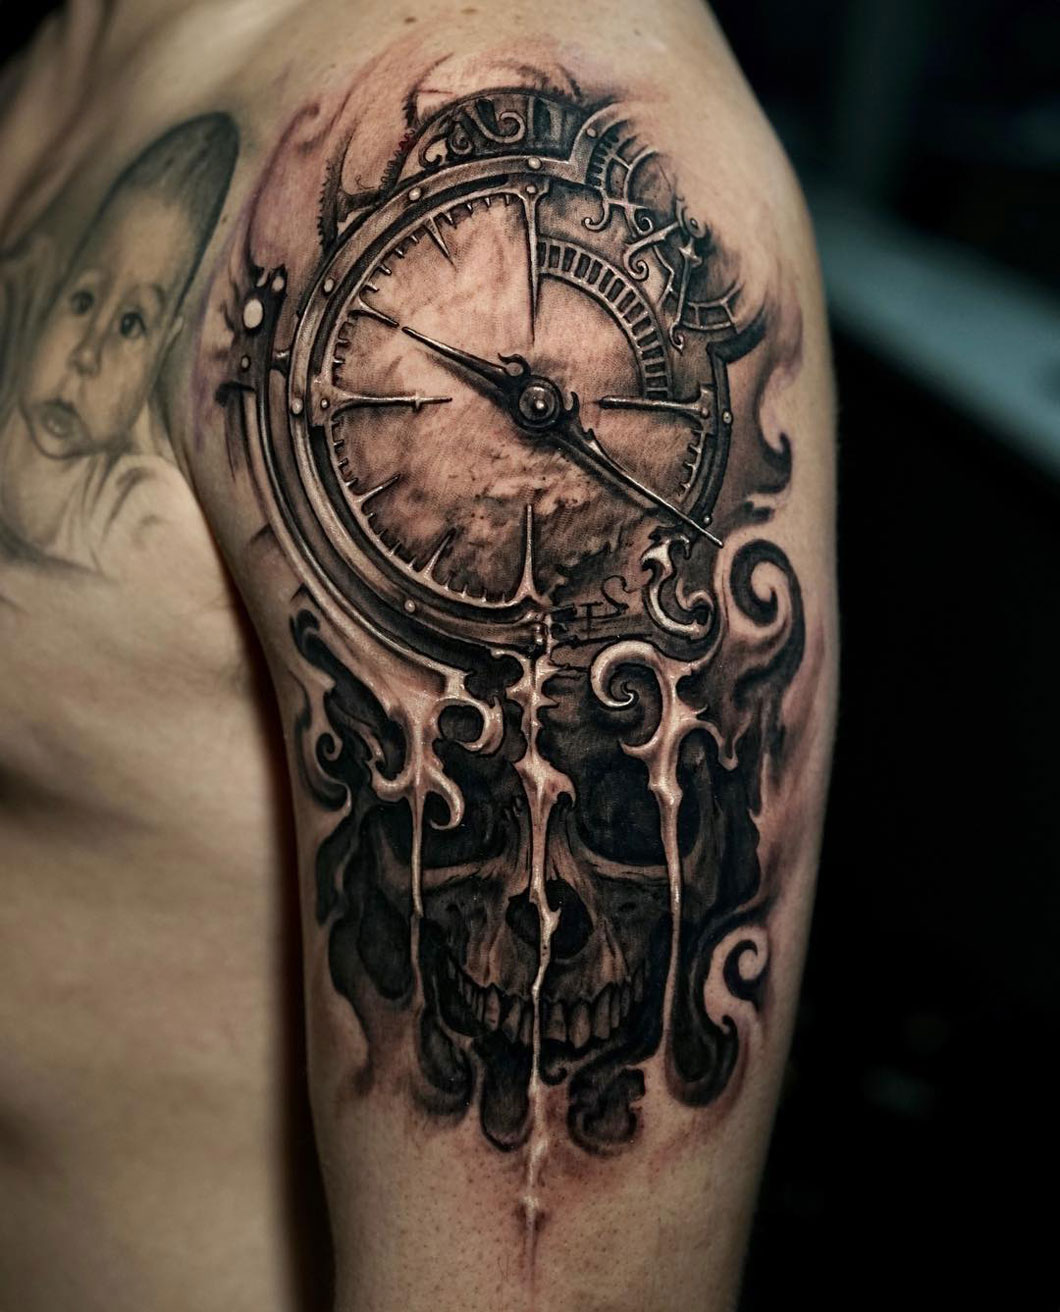 1c4e5ca6e Clock & Skull Melting | Best tattoo design ideas